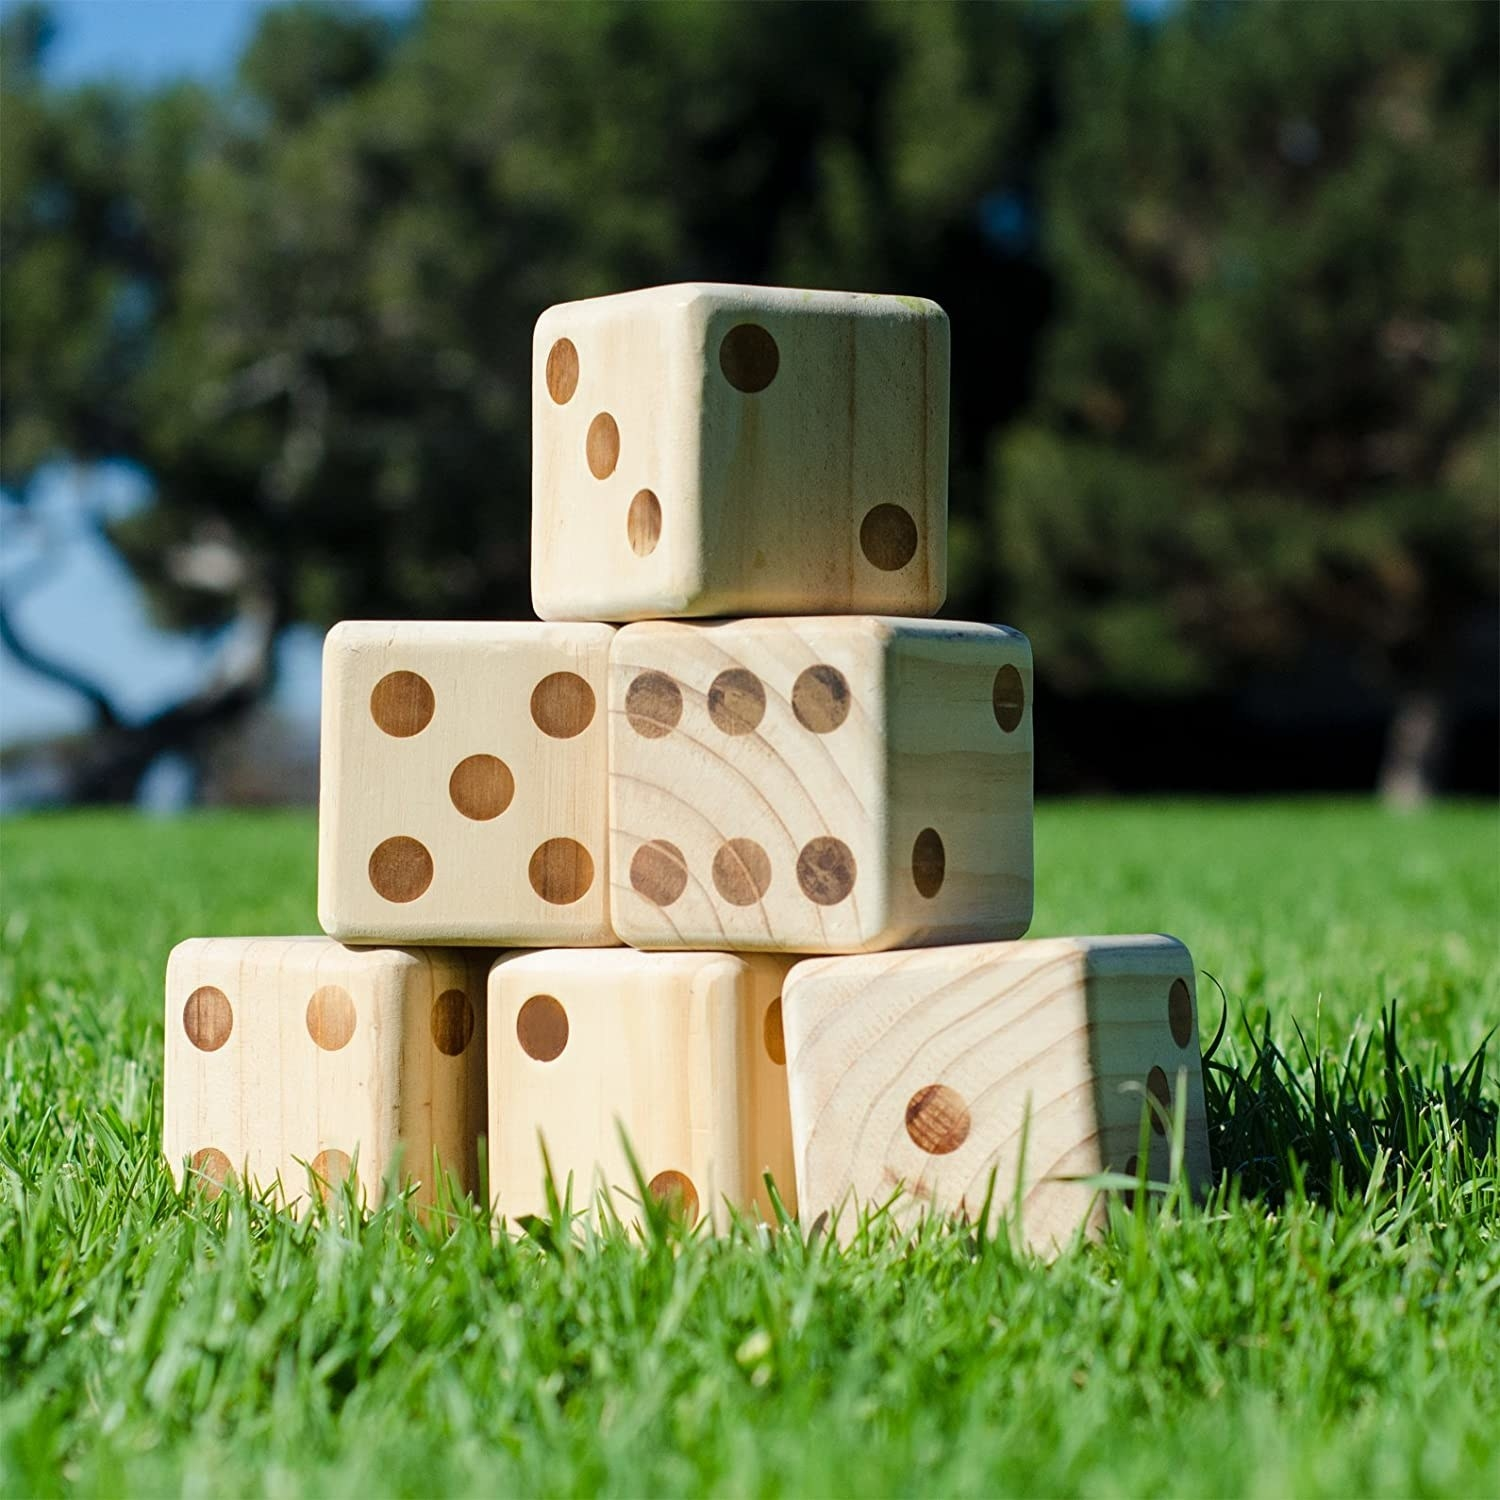 set of six large dice on green grass